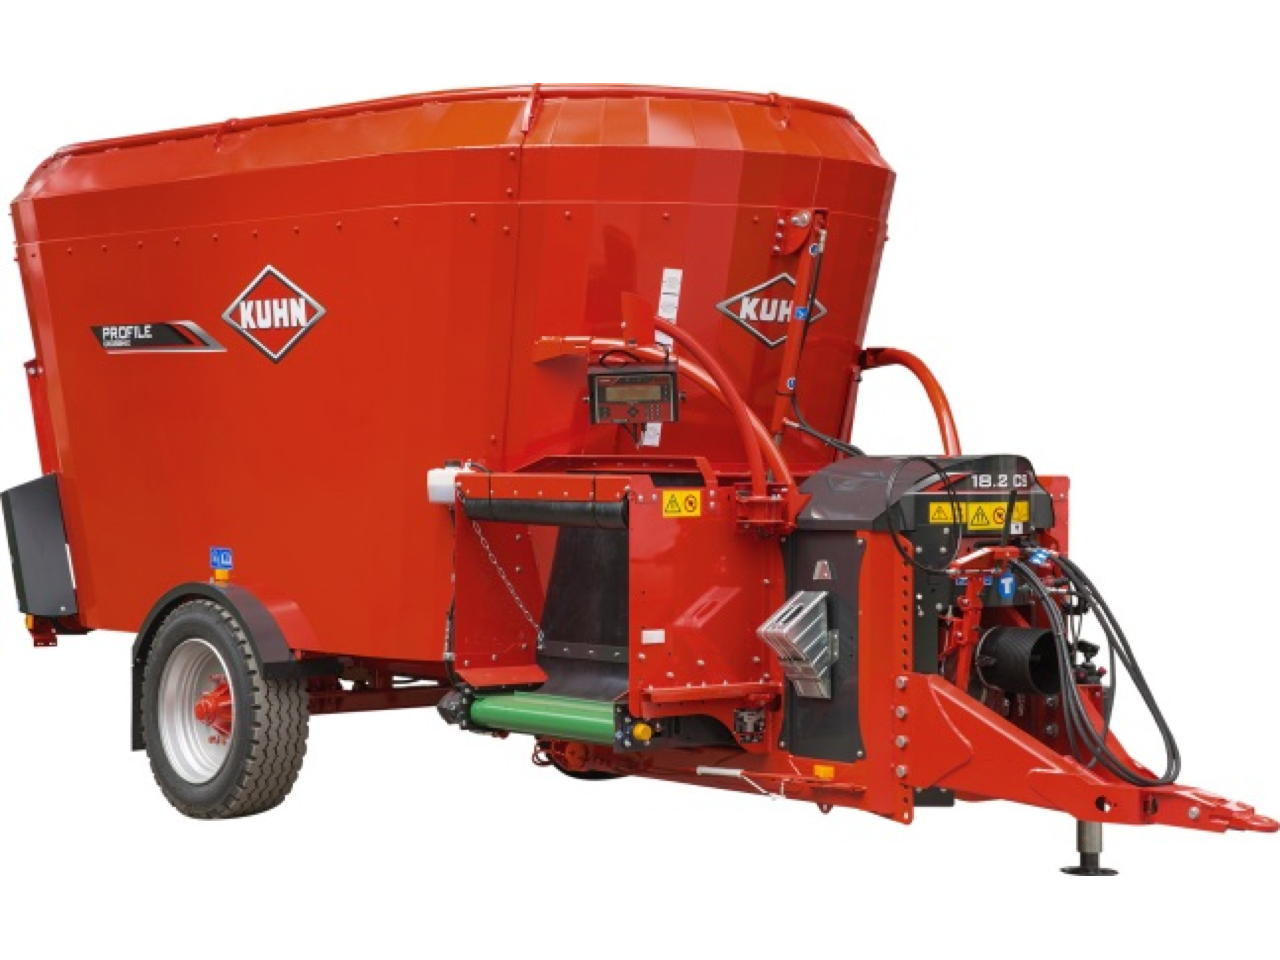 Kuhn Profile Crossmix Profile Crossmix 15.2 CS